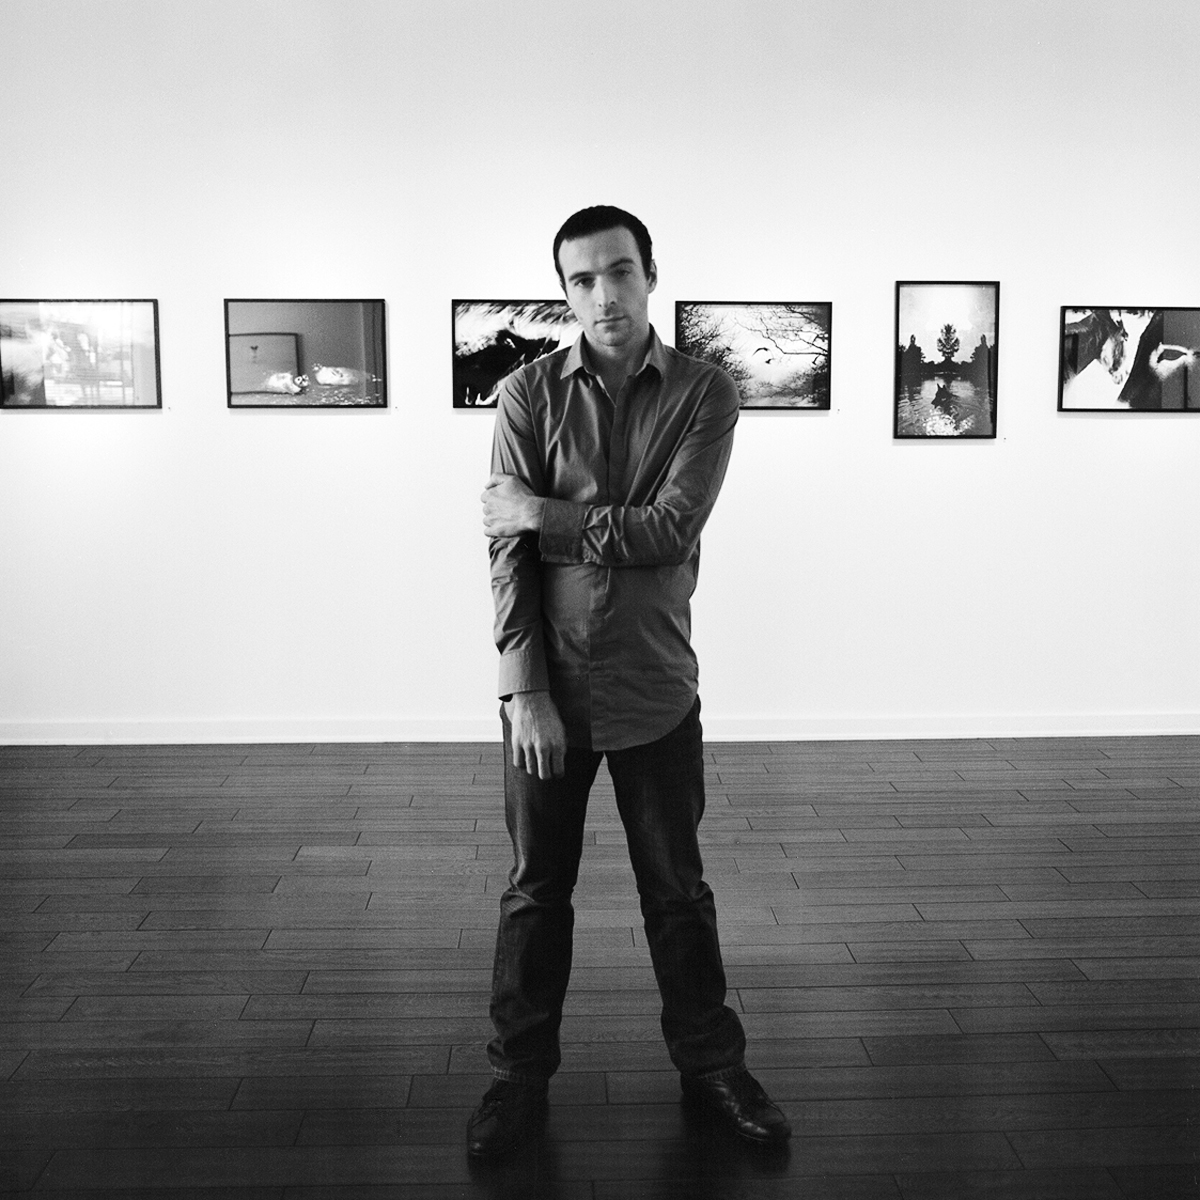 Jean-François Spricigo at his opening, January 2010. Photograph by Don Weintstein.